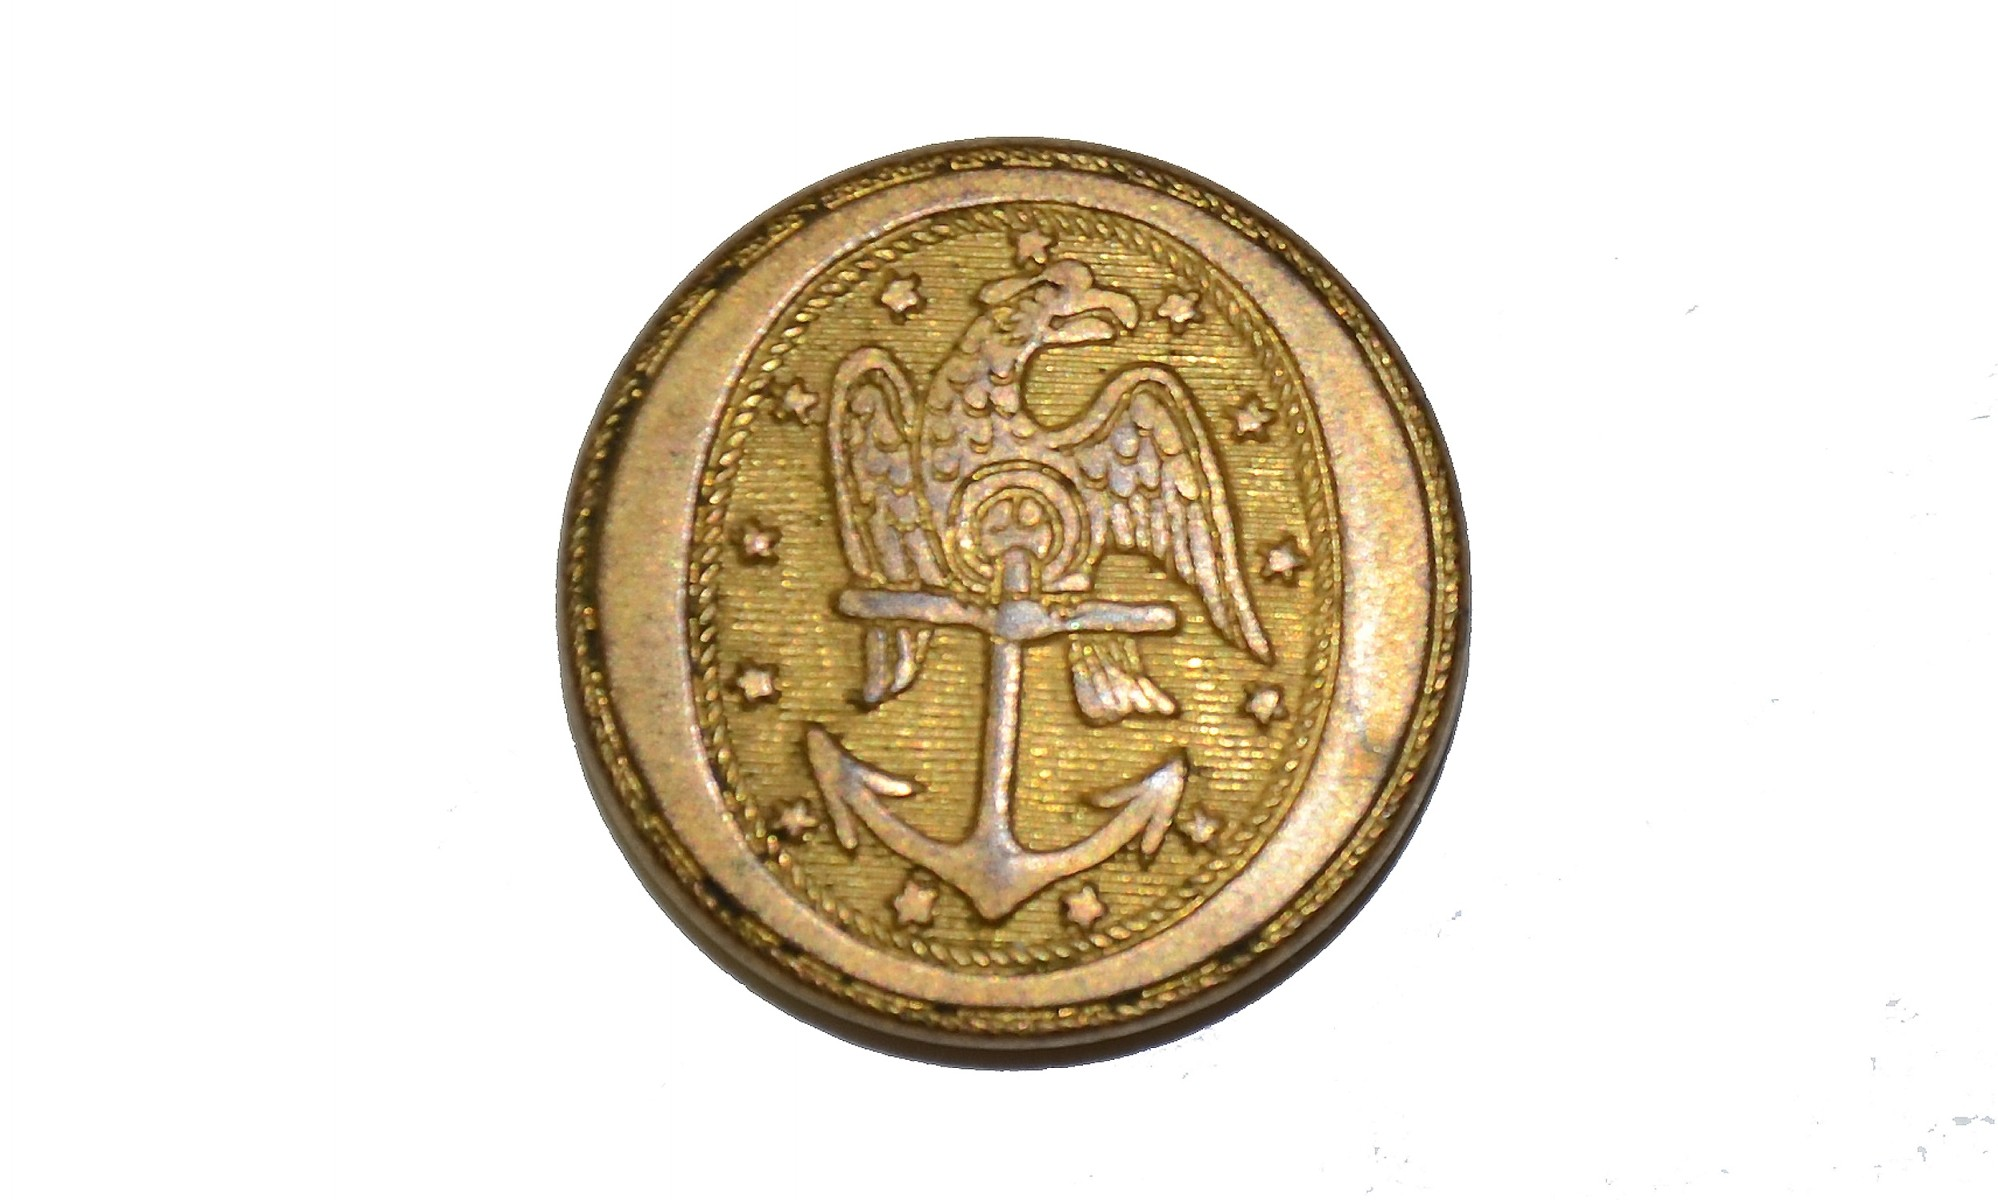 EARLY NAVY BUTTON